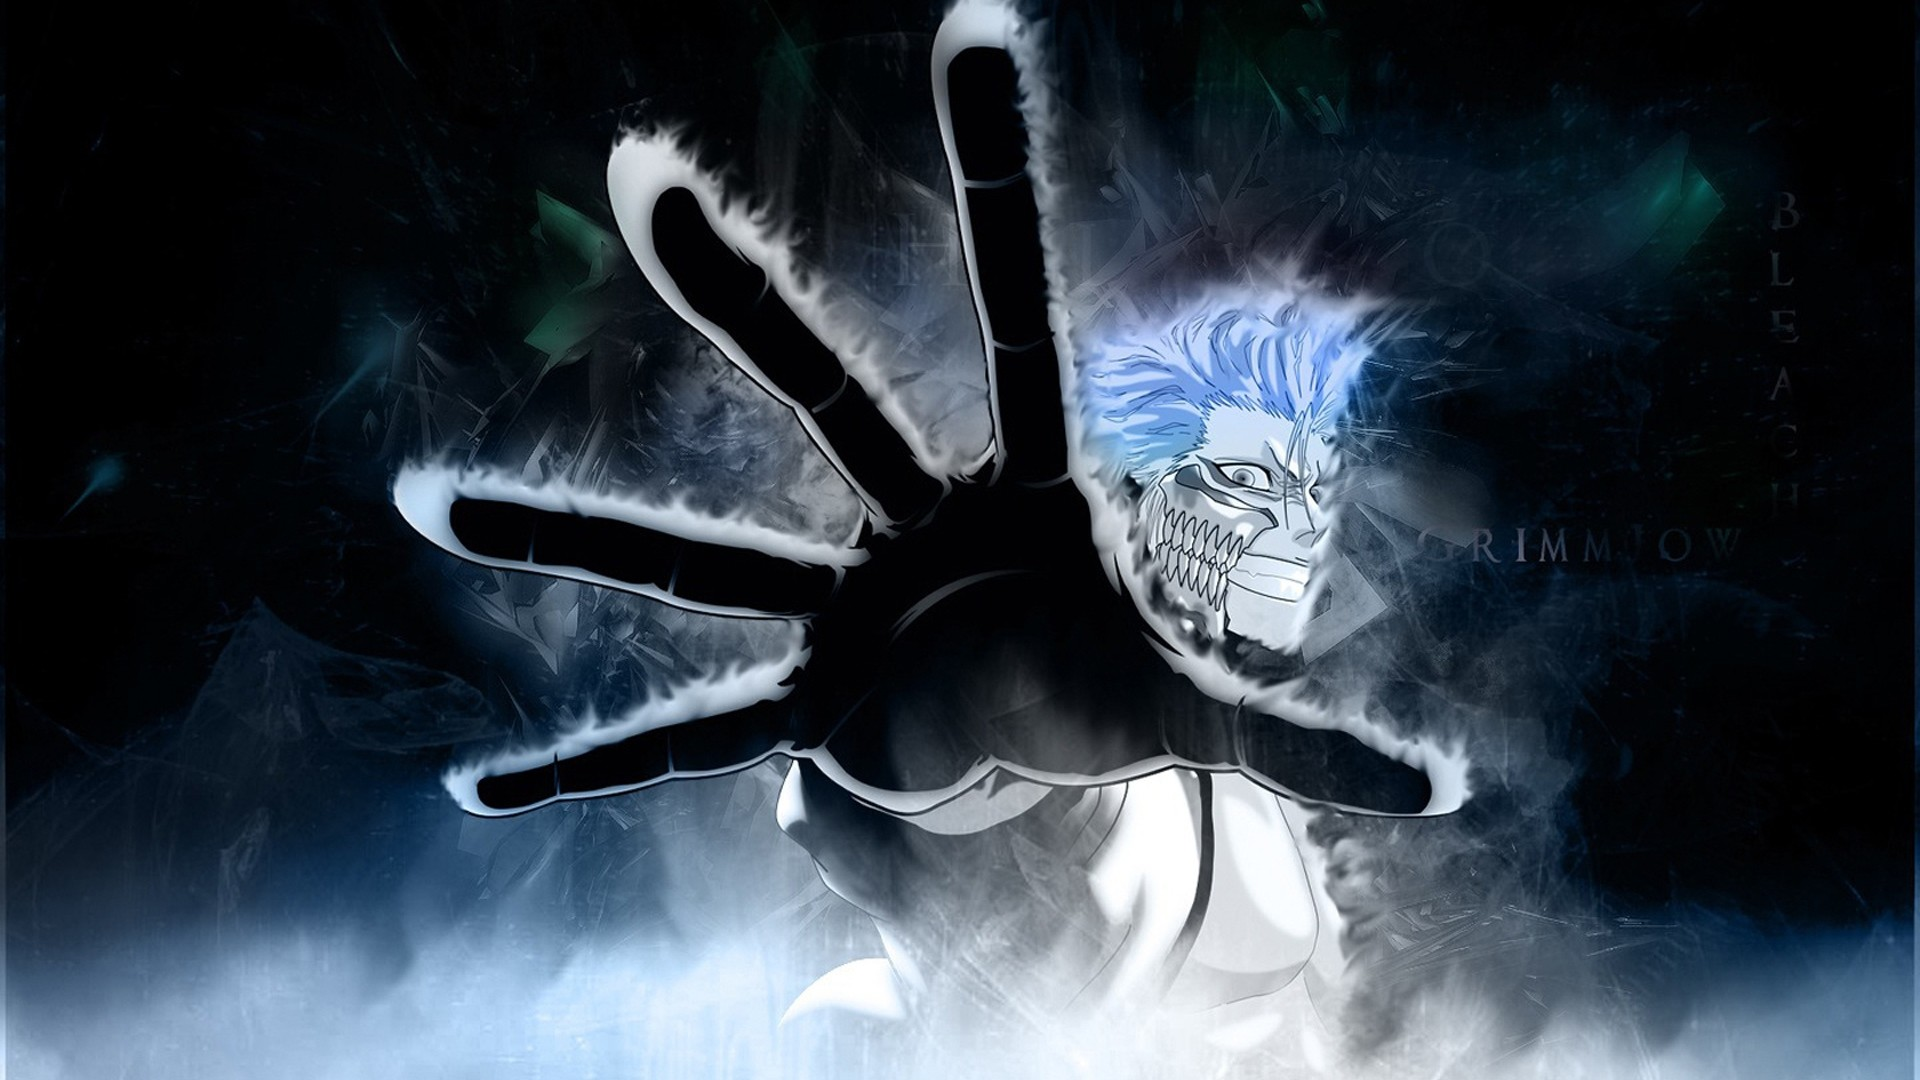 1920x1080 Grimmjow Jeagerjaques Bleach HD Wallpaper Maxivad 1920×1080 | Bleach Espada  | Pinterest | Bleach anime and Anime